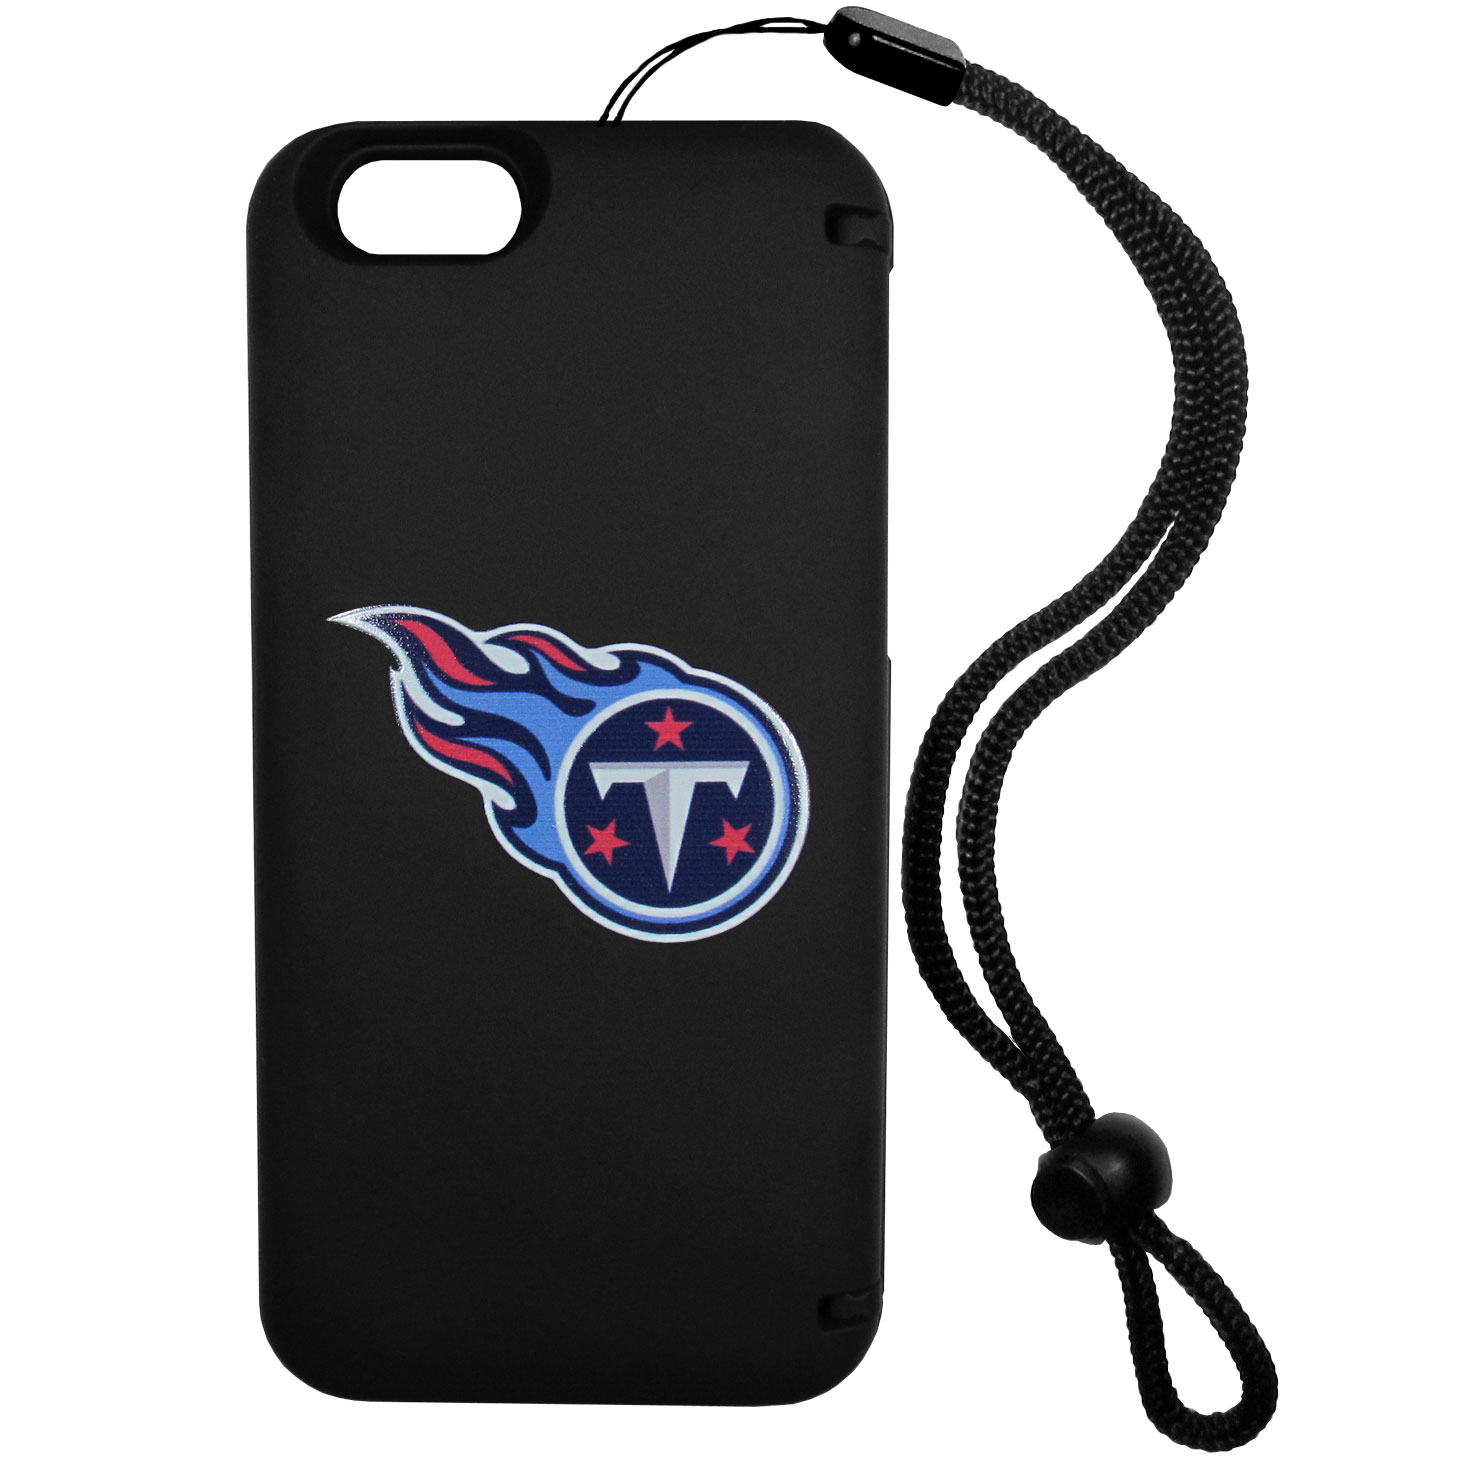 Tennessee Titans iPhone 6 Plus Everything Case - This case really does have everything but the kitchen sink! The hidden compartment lets you keep your cards, money and tickets to the big game safe and secure and has a compact mirror so you can make sure your game face is ready to go. It also comes with a kickstand to make chatting and watching videos a breeze. The wrist strap allows you to travel with ease with your everything case. If that's not enough, it also comes with the Tennessee Titans logo printed in expert detail on the front.